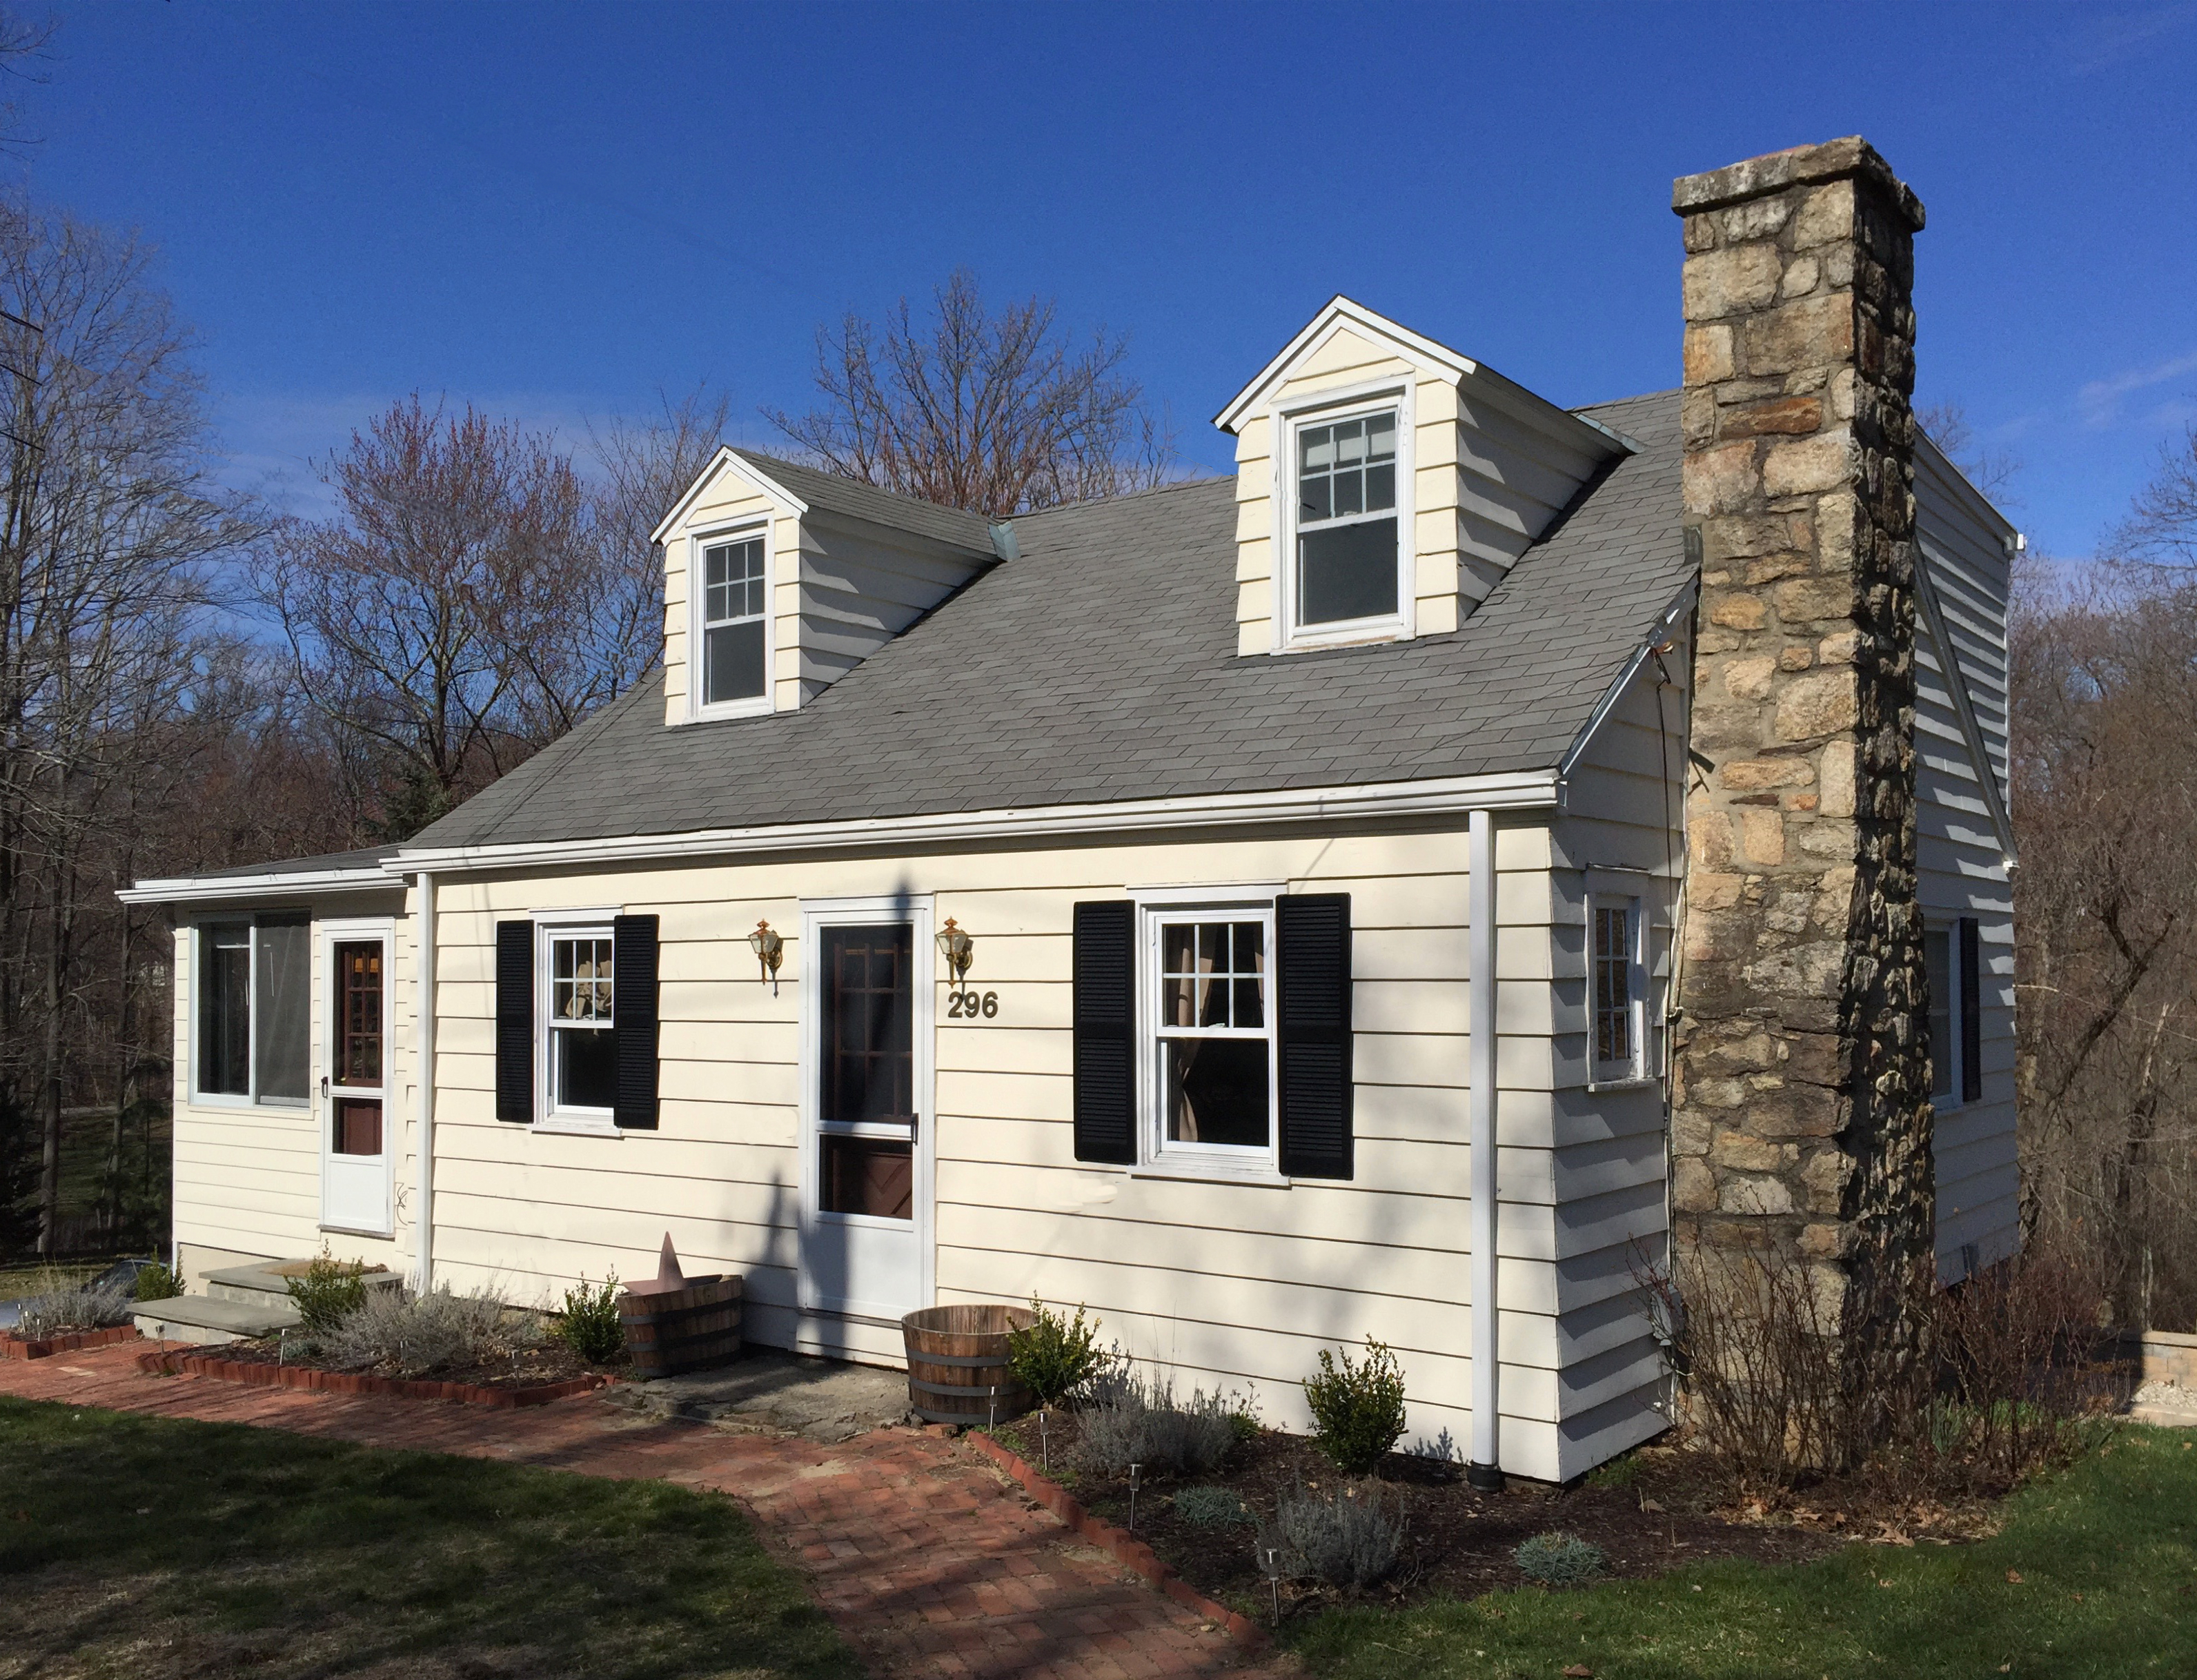 Single Family Home for Sale at Charming Cape 296 Belden Hill Road Wilton, Connecticut, 06897 United States